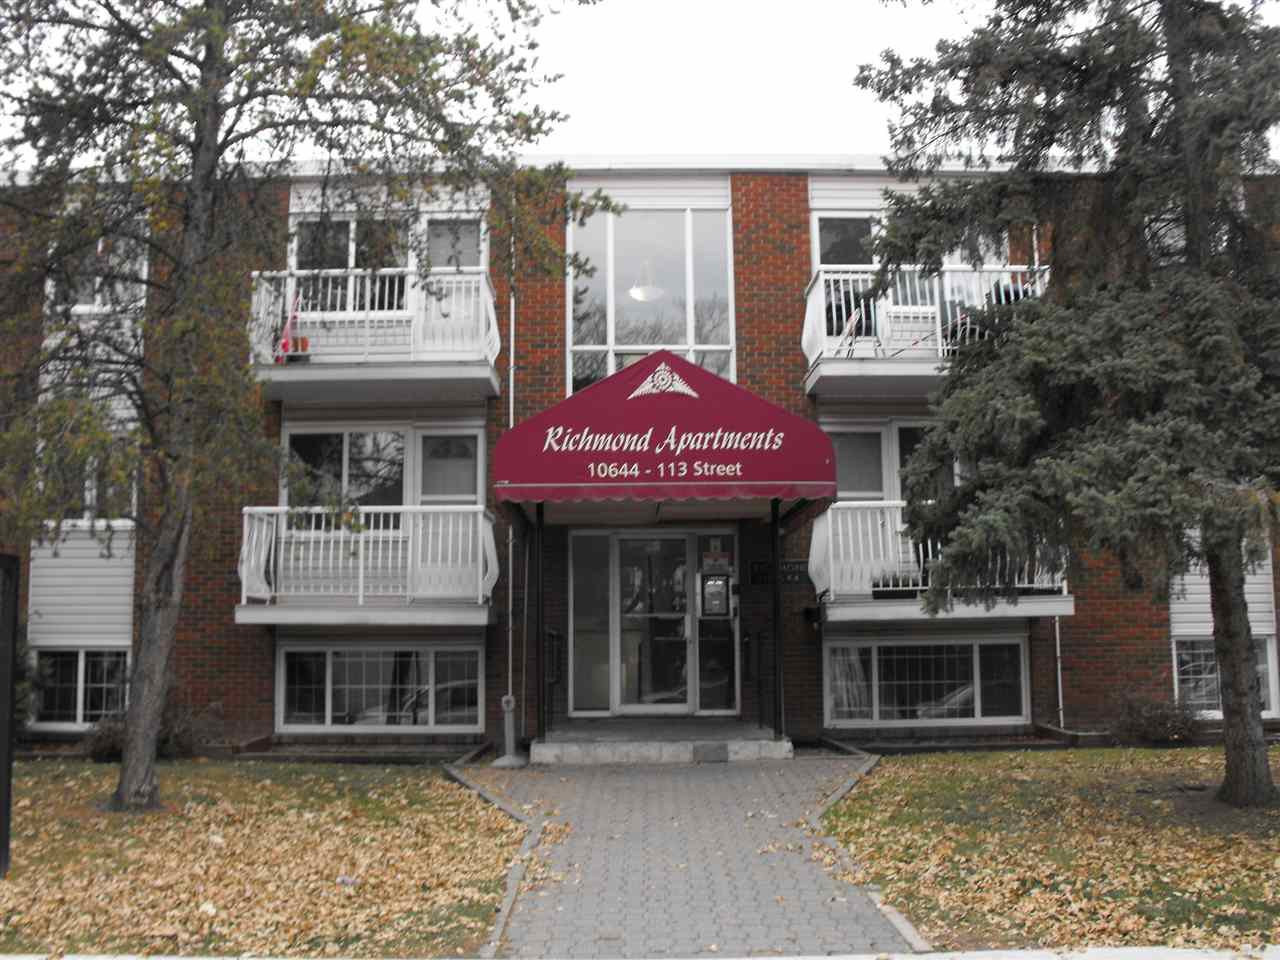 Main Photo: 202 10644 113 Street in Edmonton: Zone 08 Condo for sale : MLS®# E4178973